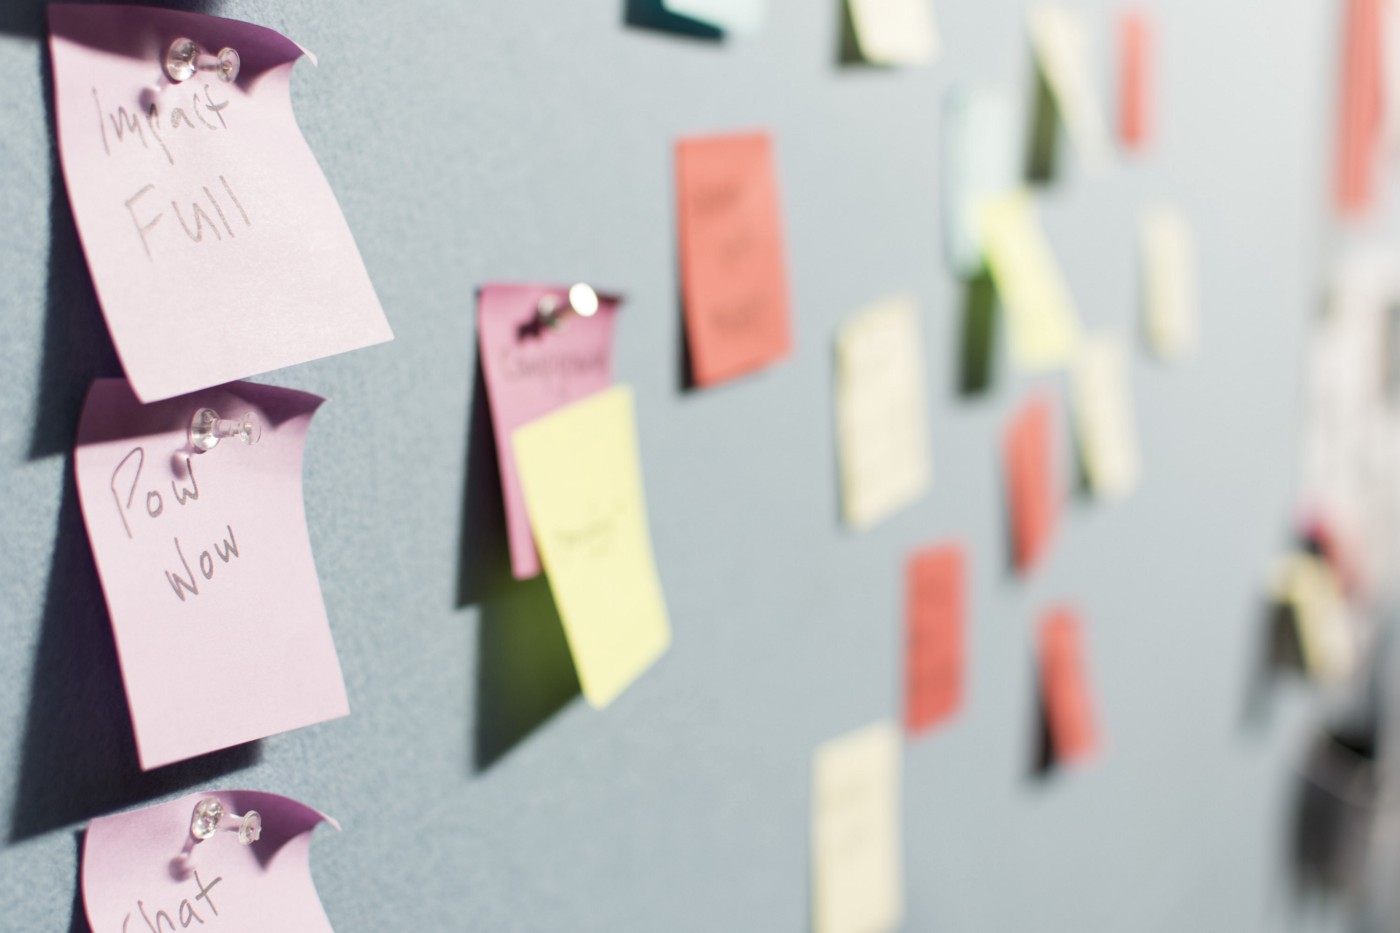 Multicolored Post-It notes thumb-tacked to wall